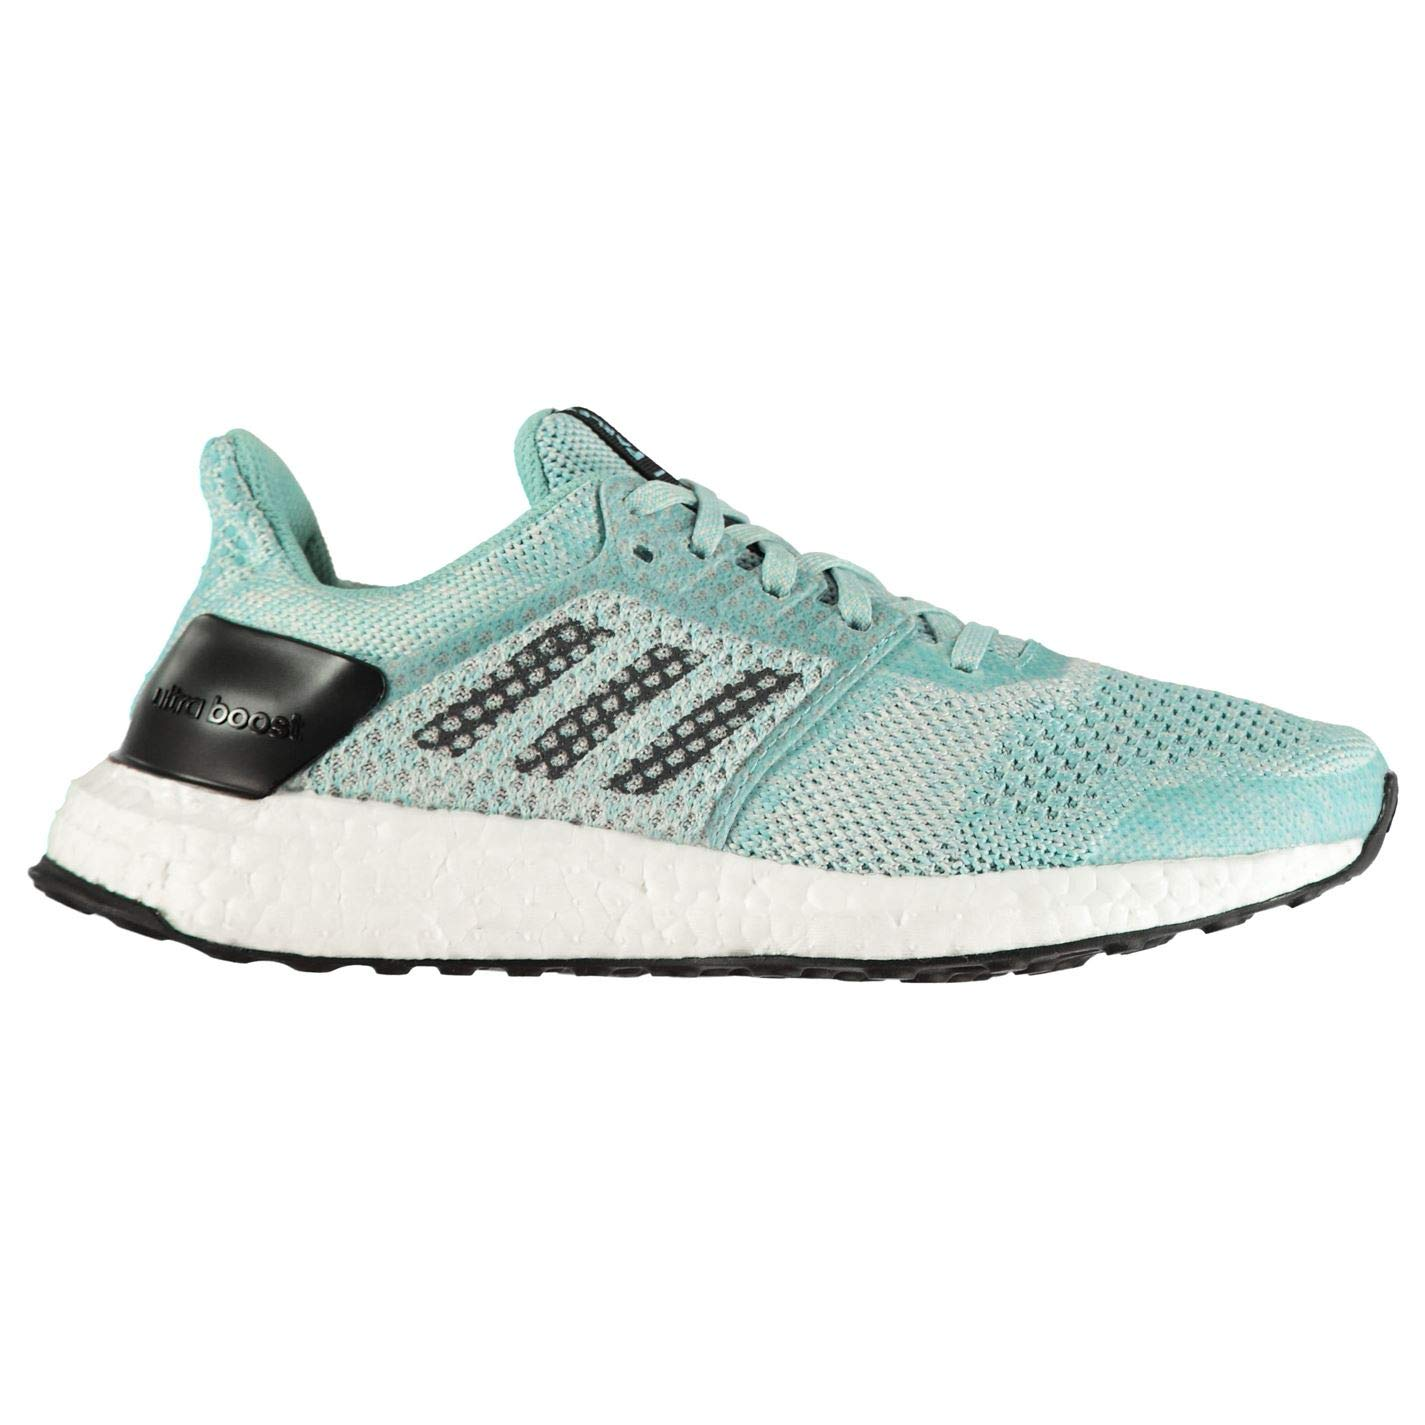 29efa64f85f58 adidas Women s Ultraboost St W Parley Fitness Shoes  Amazon.co.uk  Shoes    Bags